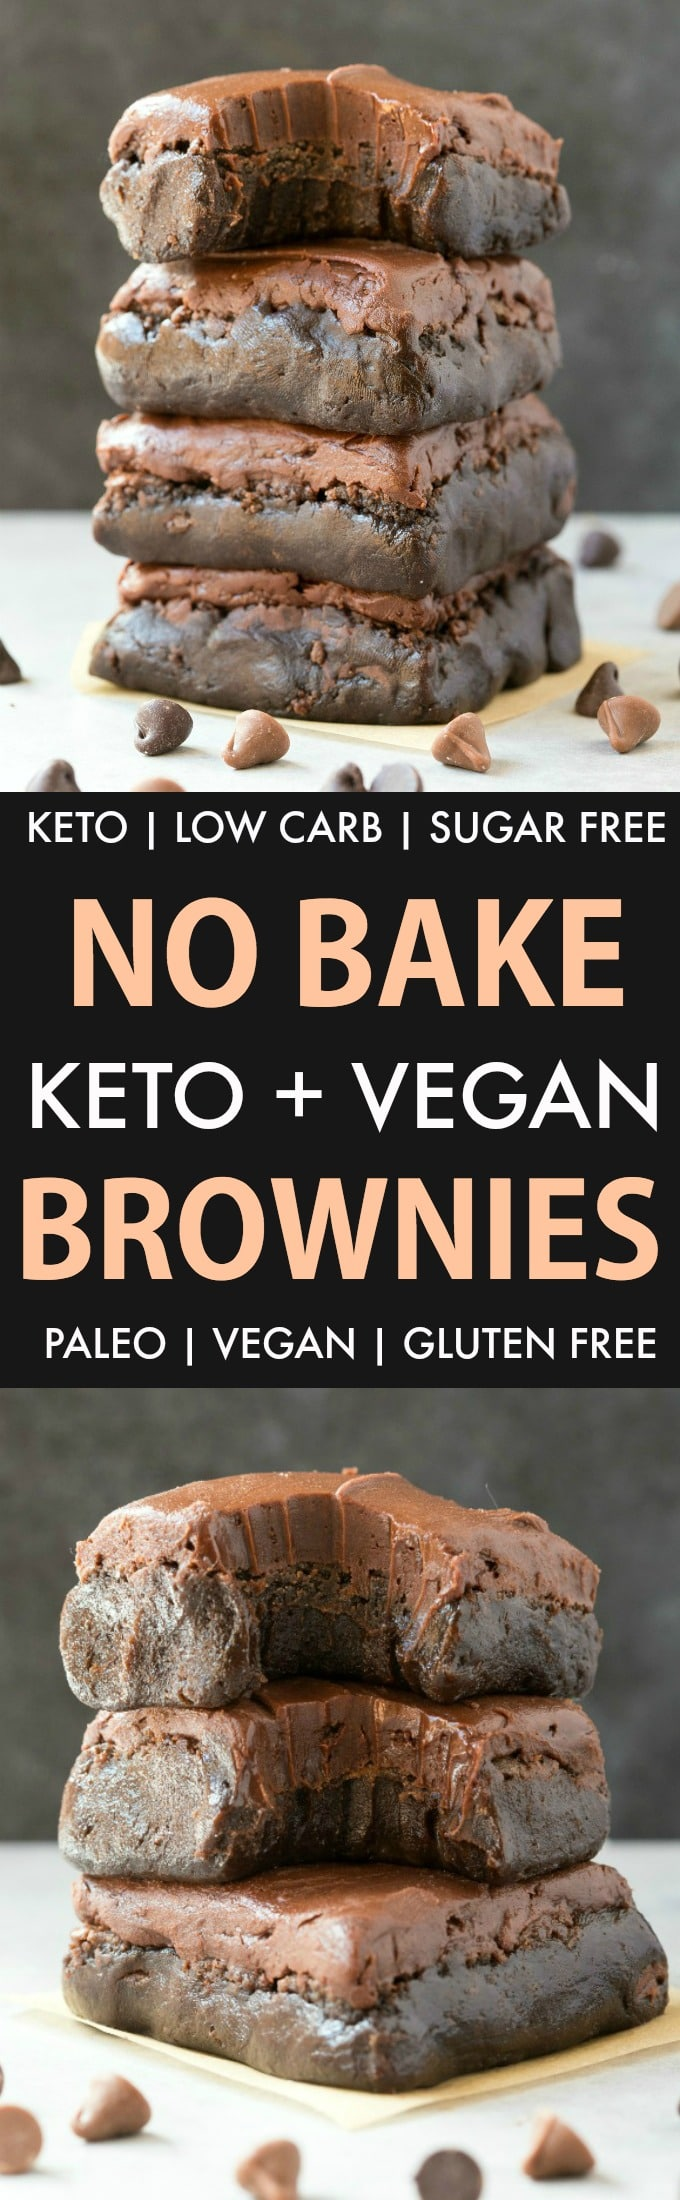 No Bake Paleo Vegan Brownies (Keto, Low Carb, Sugar Free)- An easy 5-ingredient recipe for fudgy, gooey and secretly healthy raw brownies! Protein-packed, completely sugar free and ready in minutes! The ultimate healthy no bake dessert! #nobakedessert #keto #vegan #ketogenicrecipe #paleo | Recipe on thebigmansworld.com